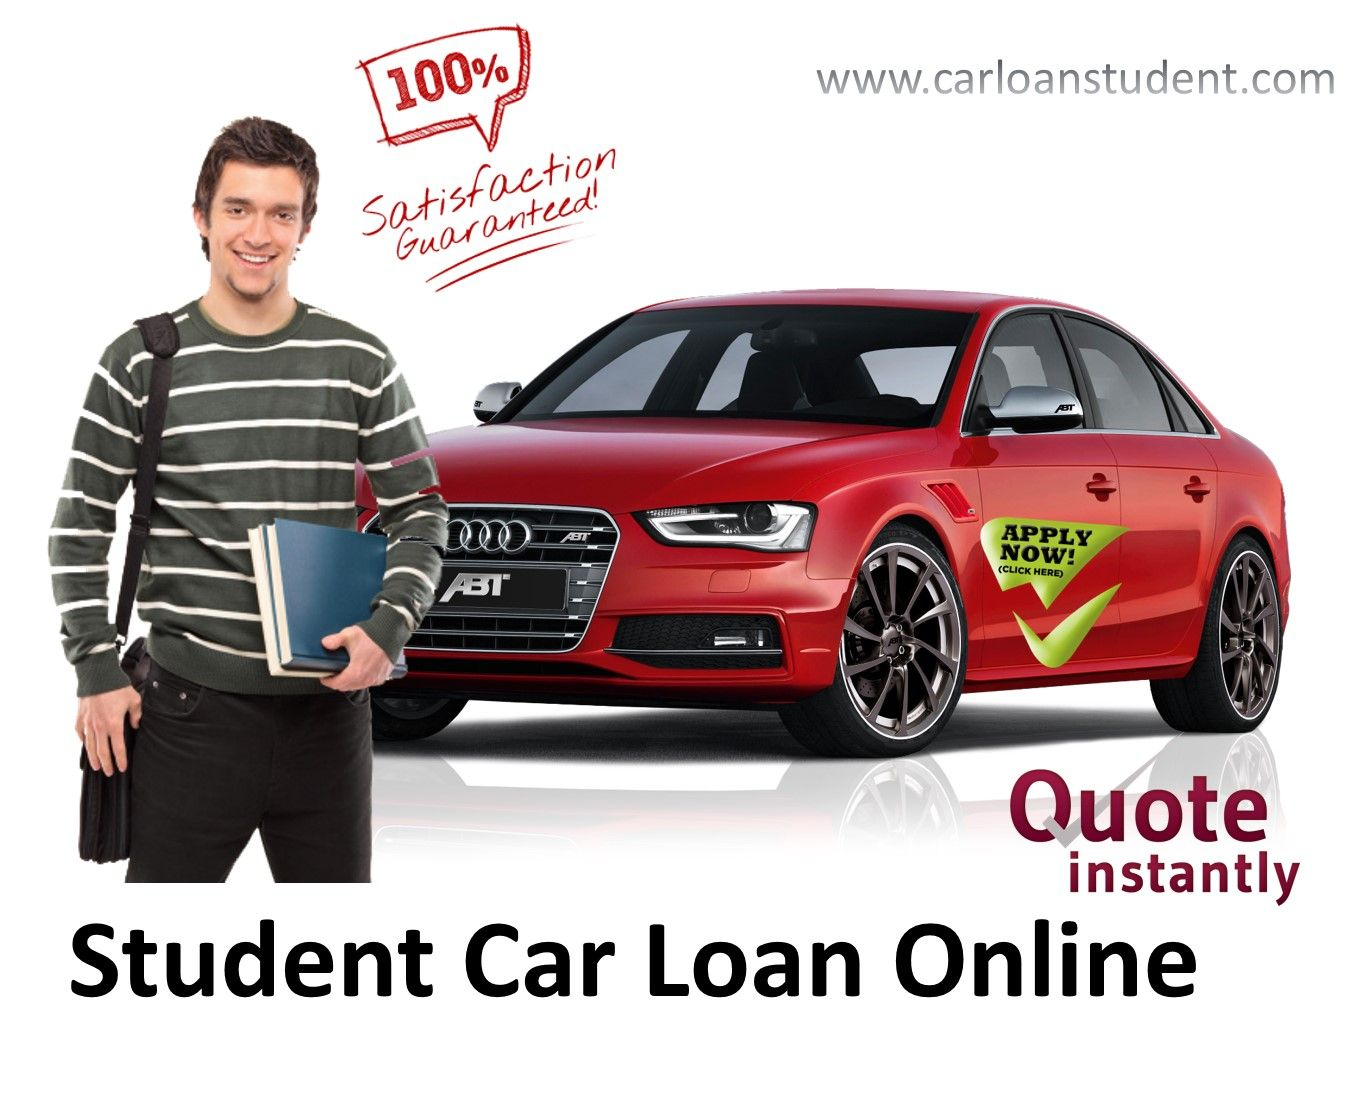 Get best deal on student car loans online for a college